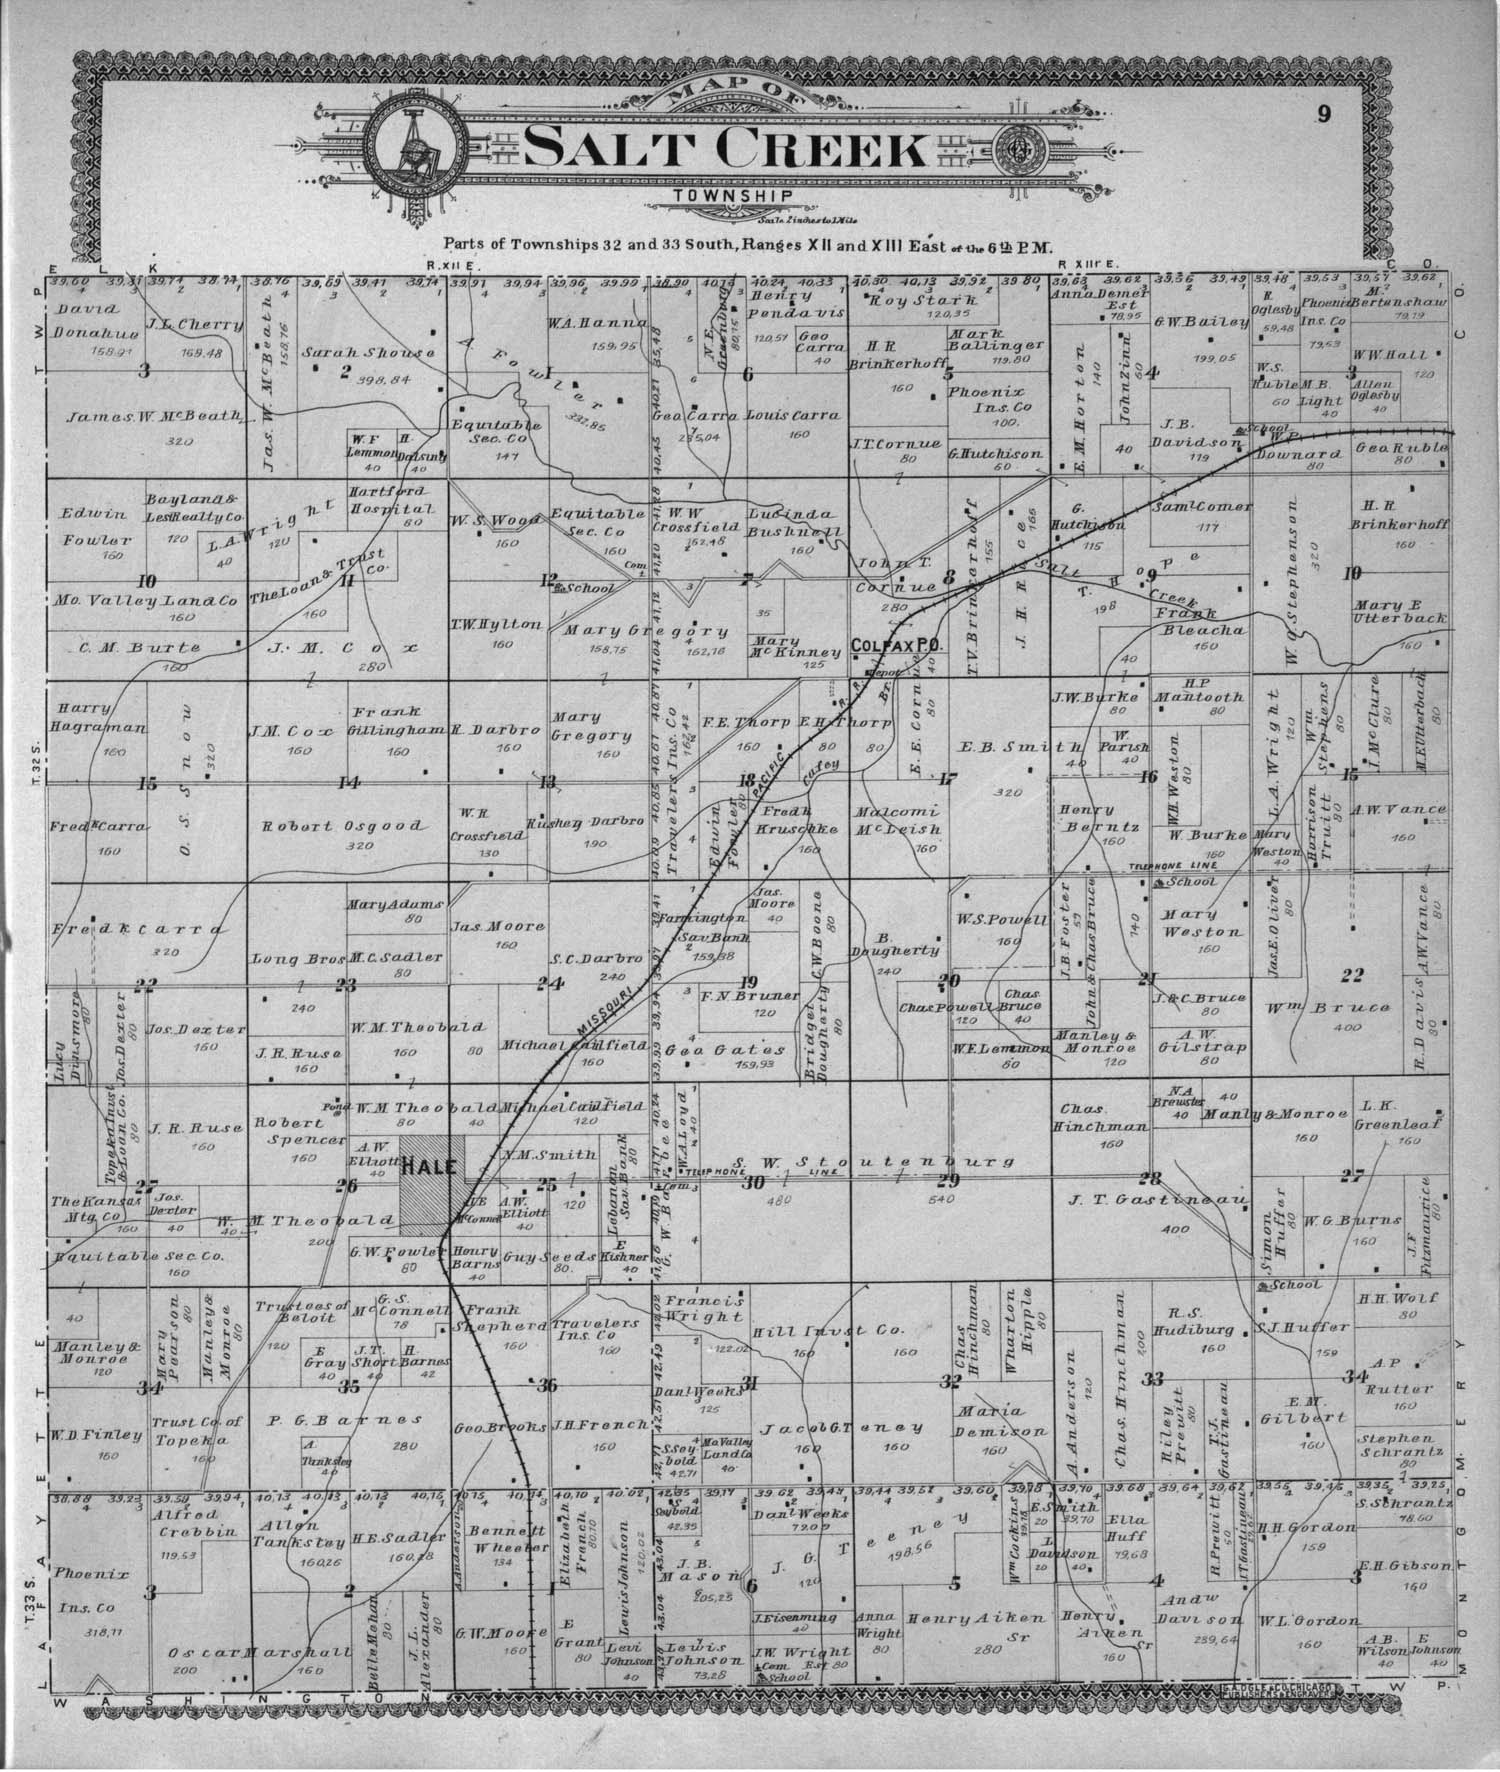 Standard atlas of Chautauqua County, Kansas - 9